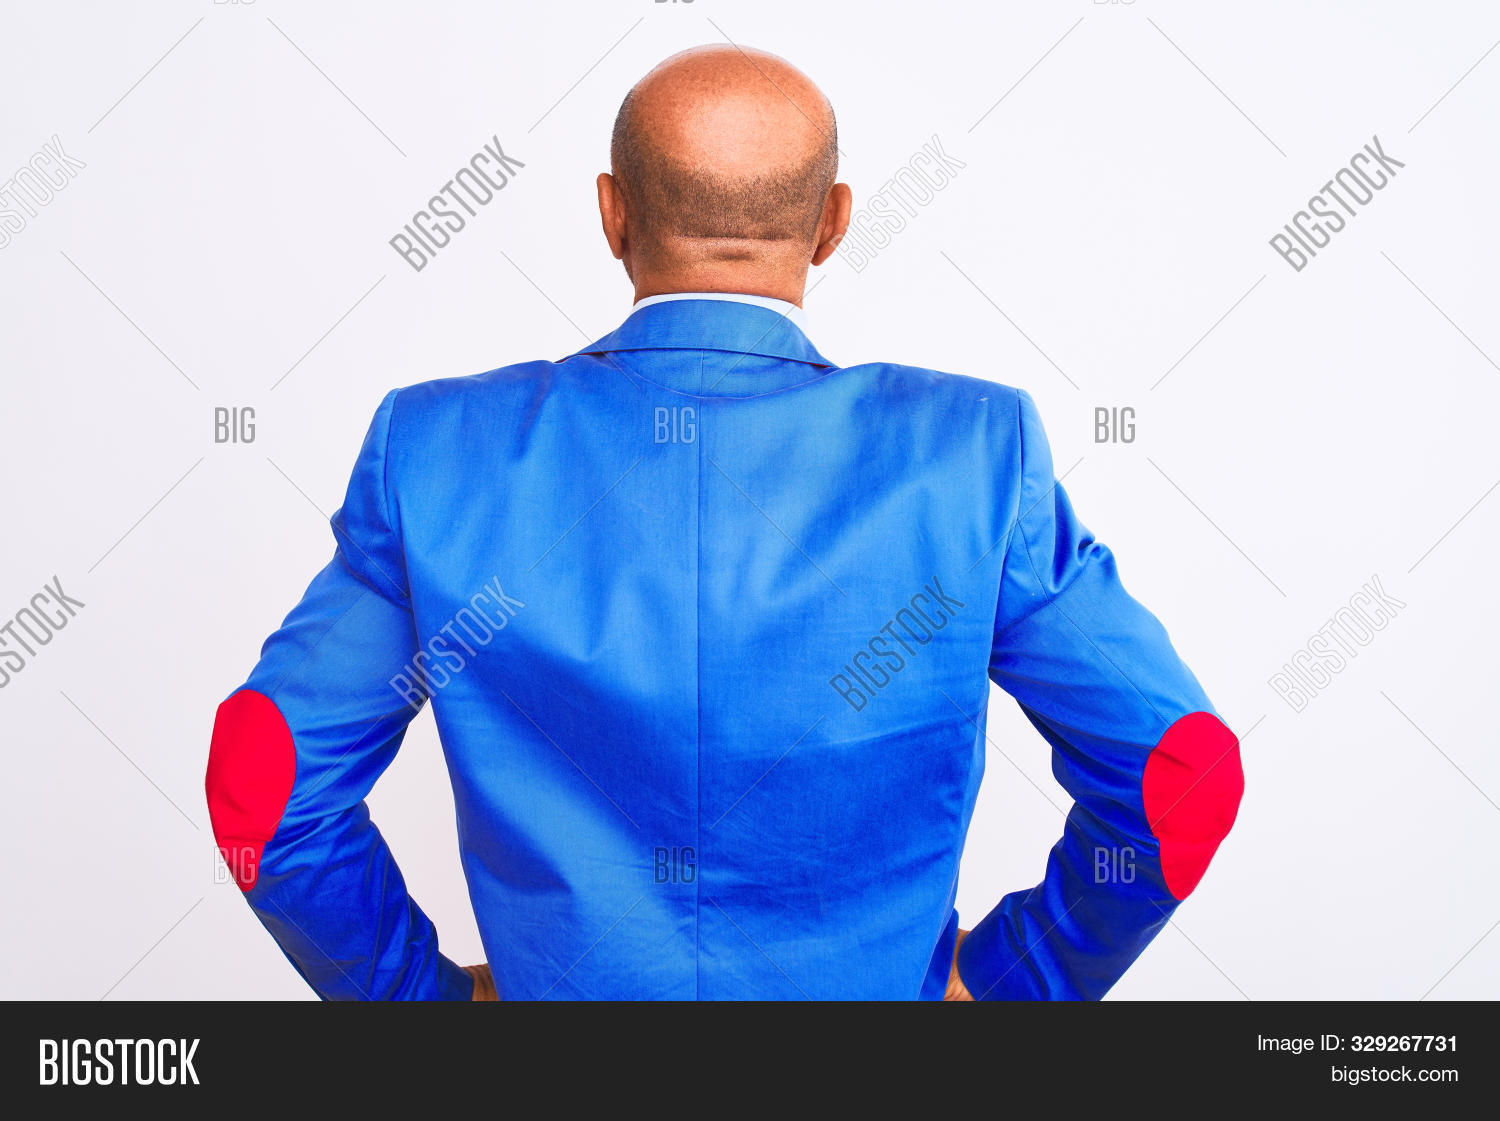 adult,arms,away,back,background,backside,backward,backwards,bald,behind,body,boss,business,businessman,casual,caucasian,cheerful,concentrated,employee,executive,face,hair,hands,handsome,head,isolated,looking,male,man,manager,middle age,one,over,people,person,portrait,posing,professional,rear,standing,success,suit,view,white,worker